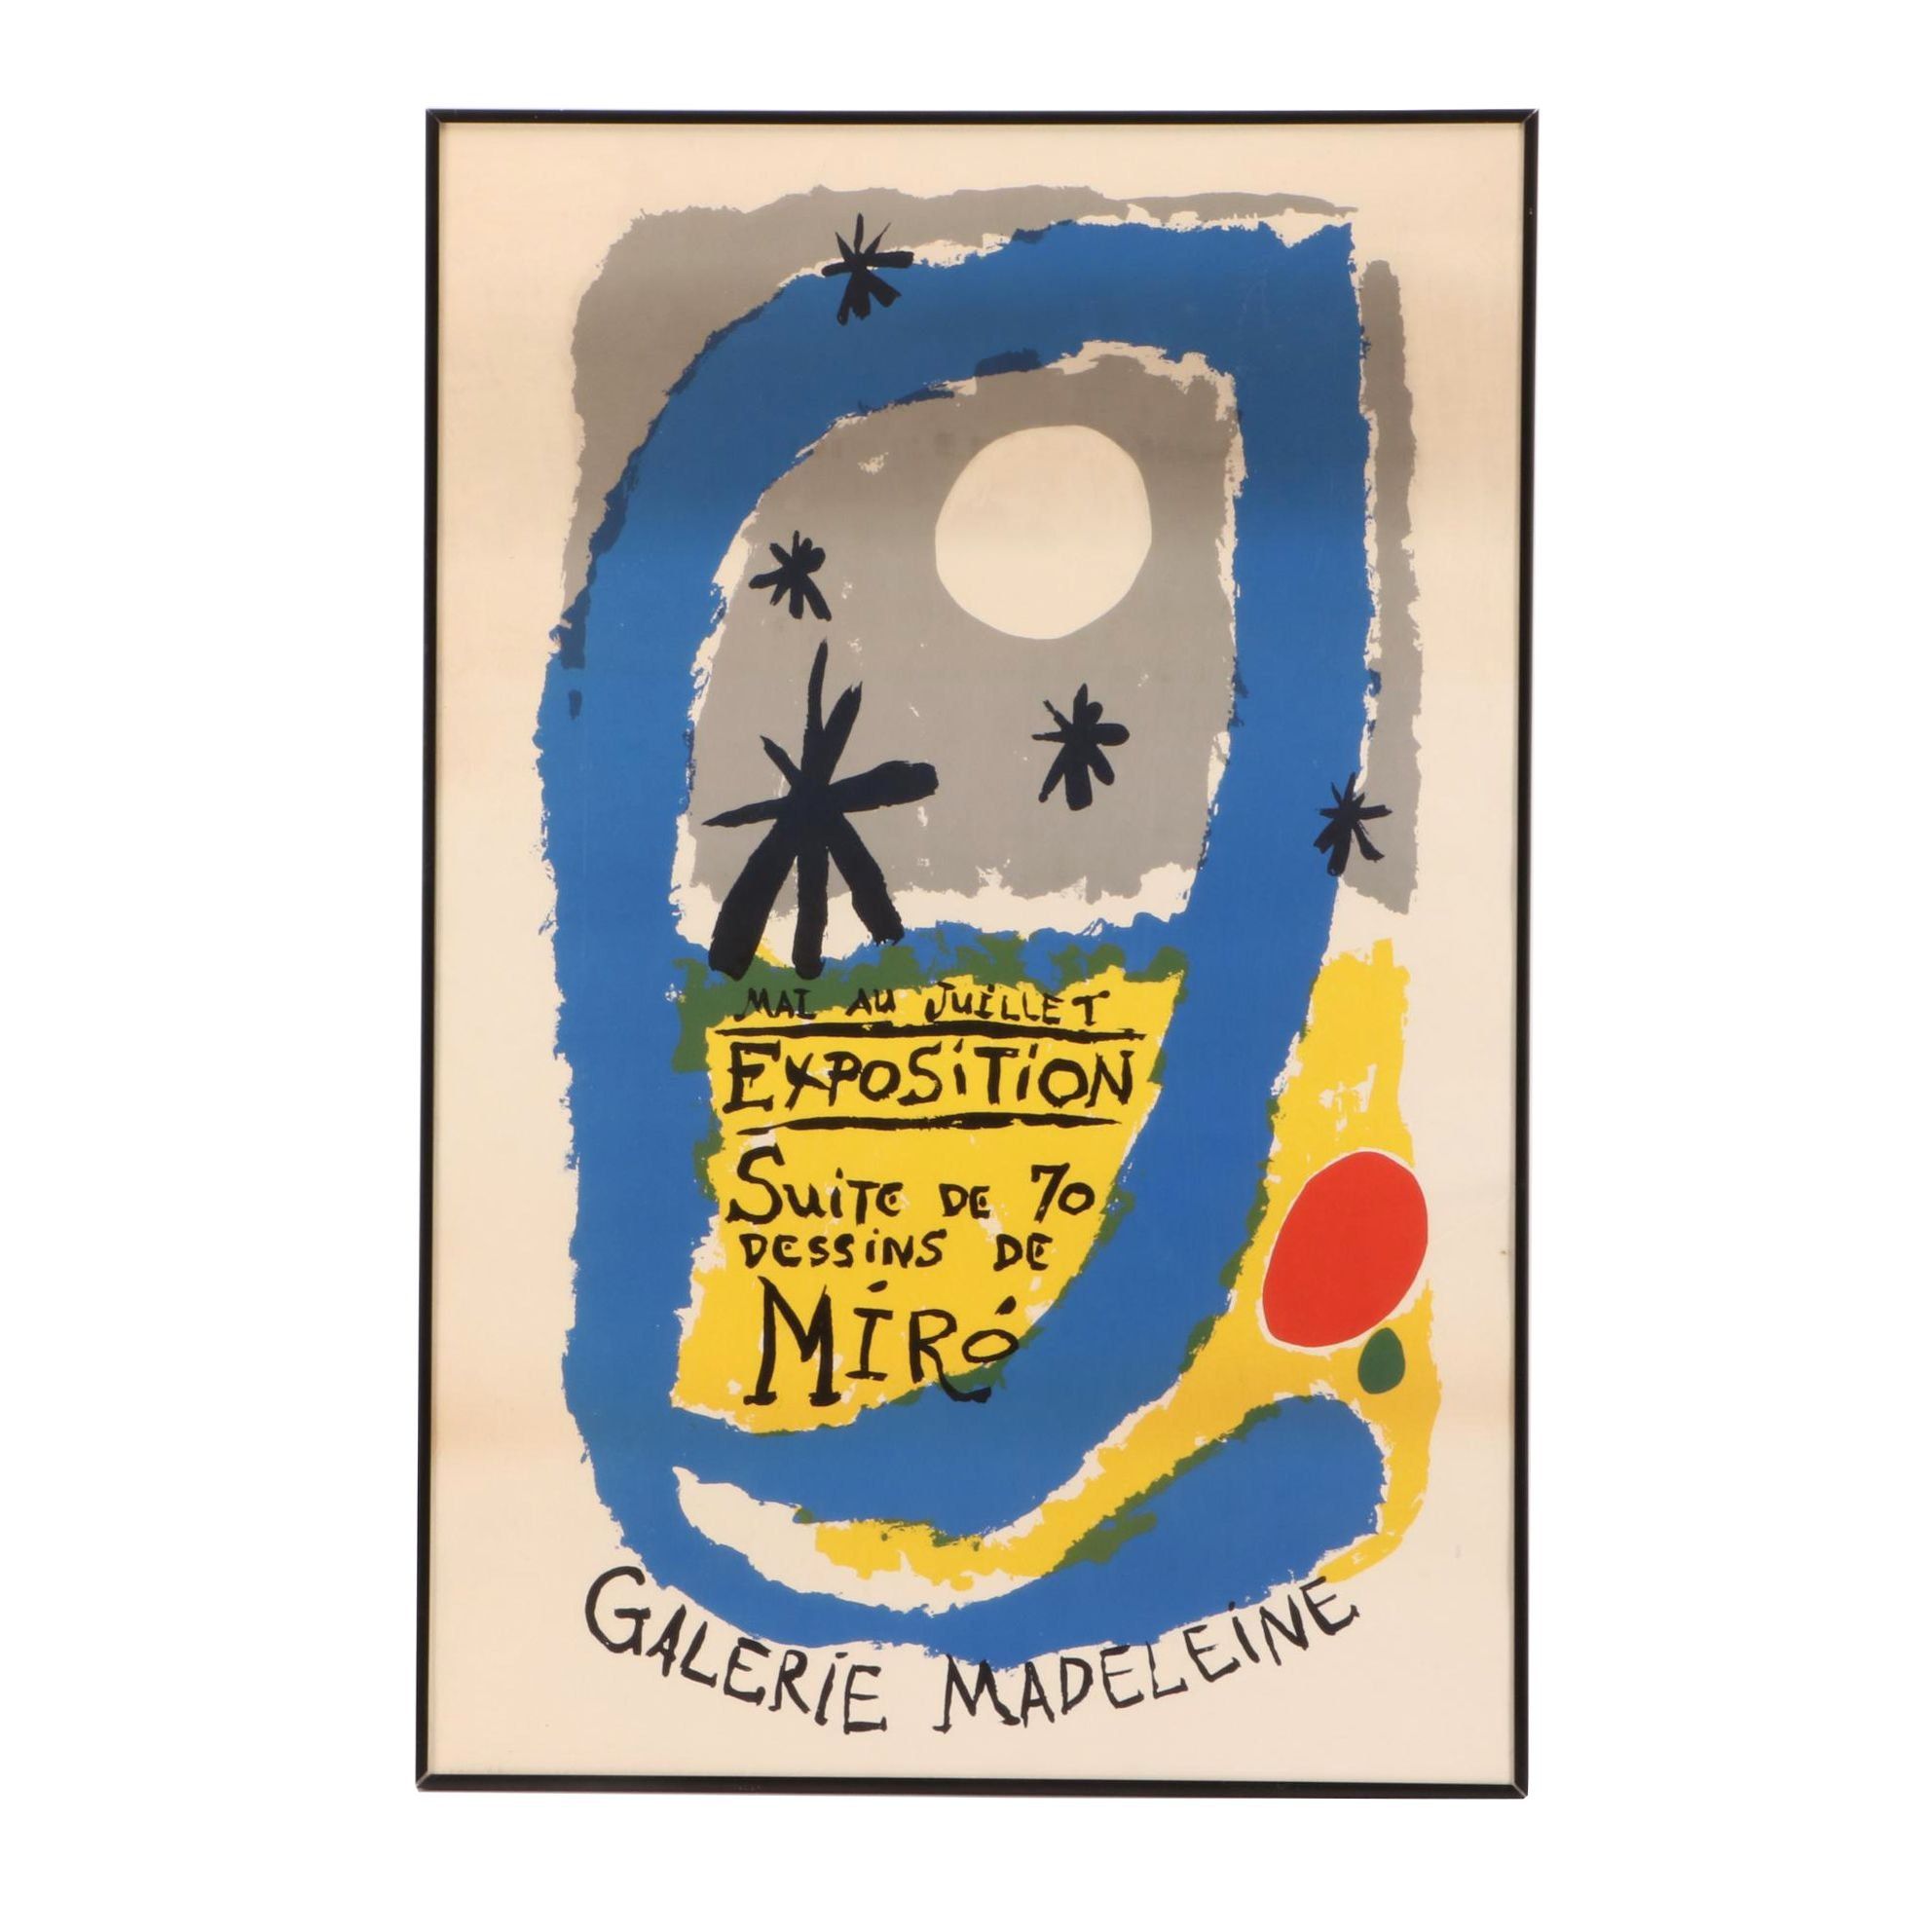 Lithographic Exhibition Poster for Joan Miró at Galerie Madeleine